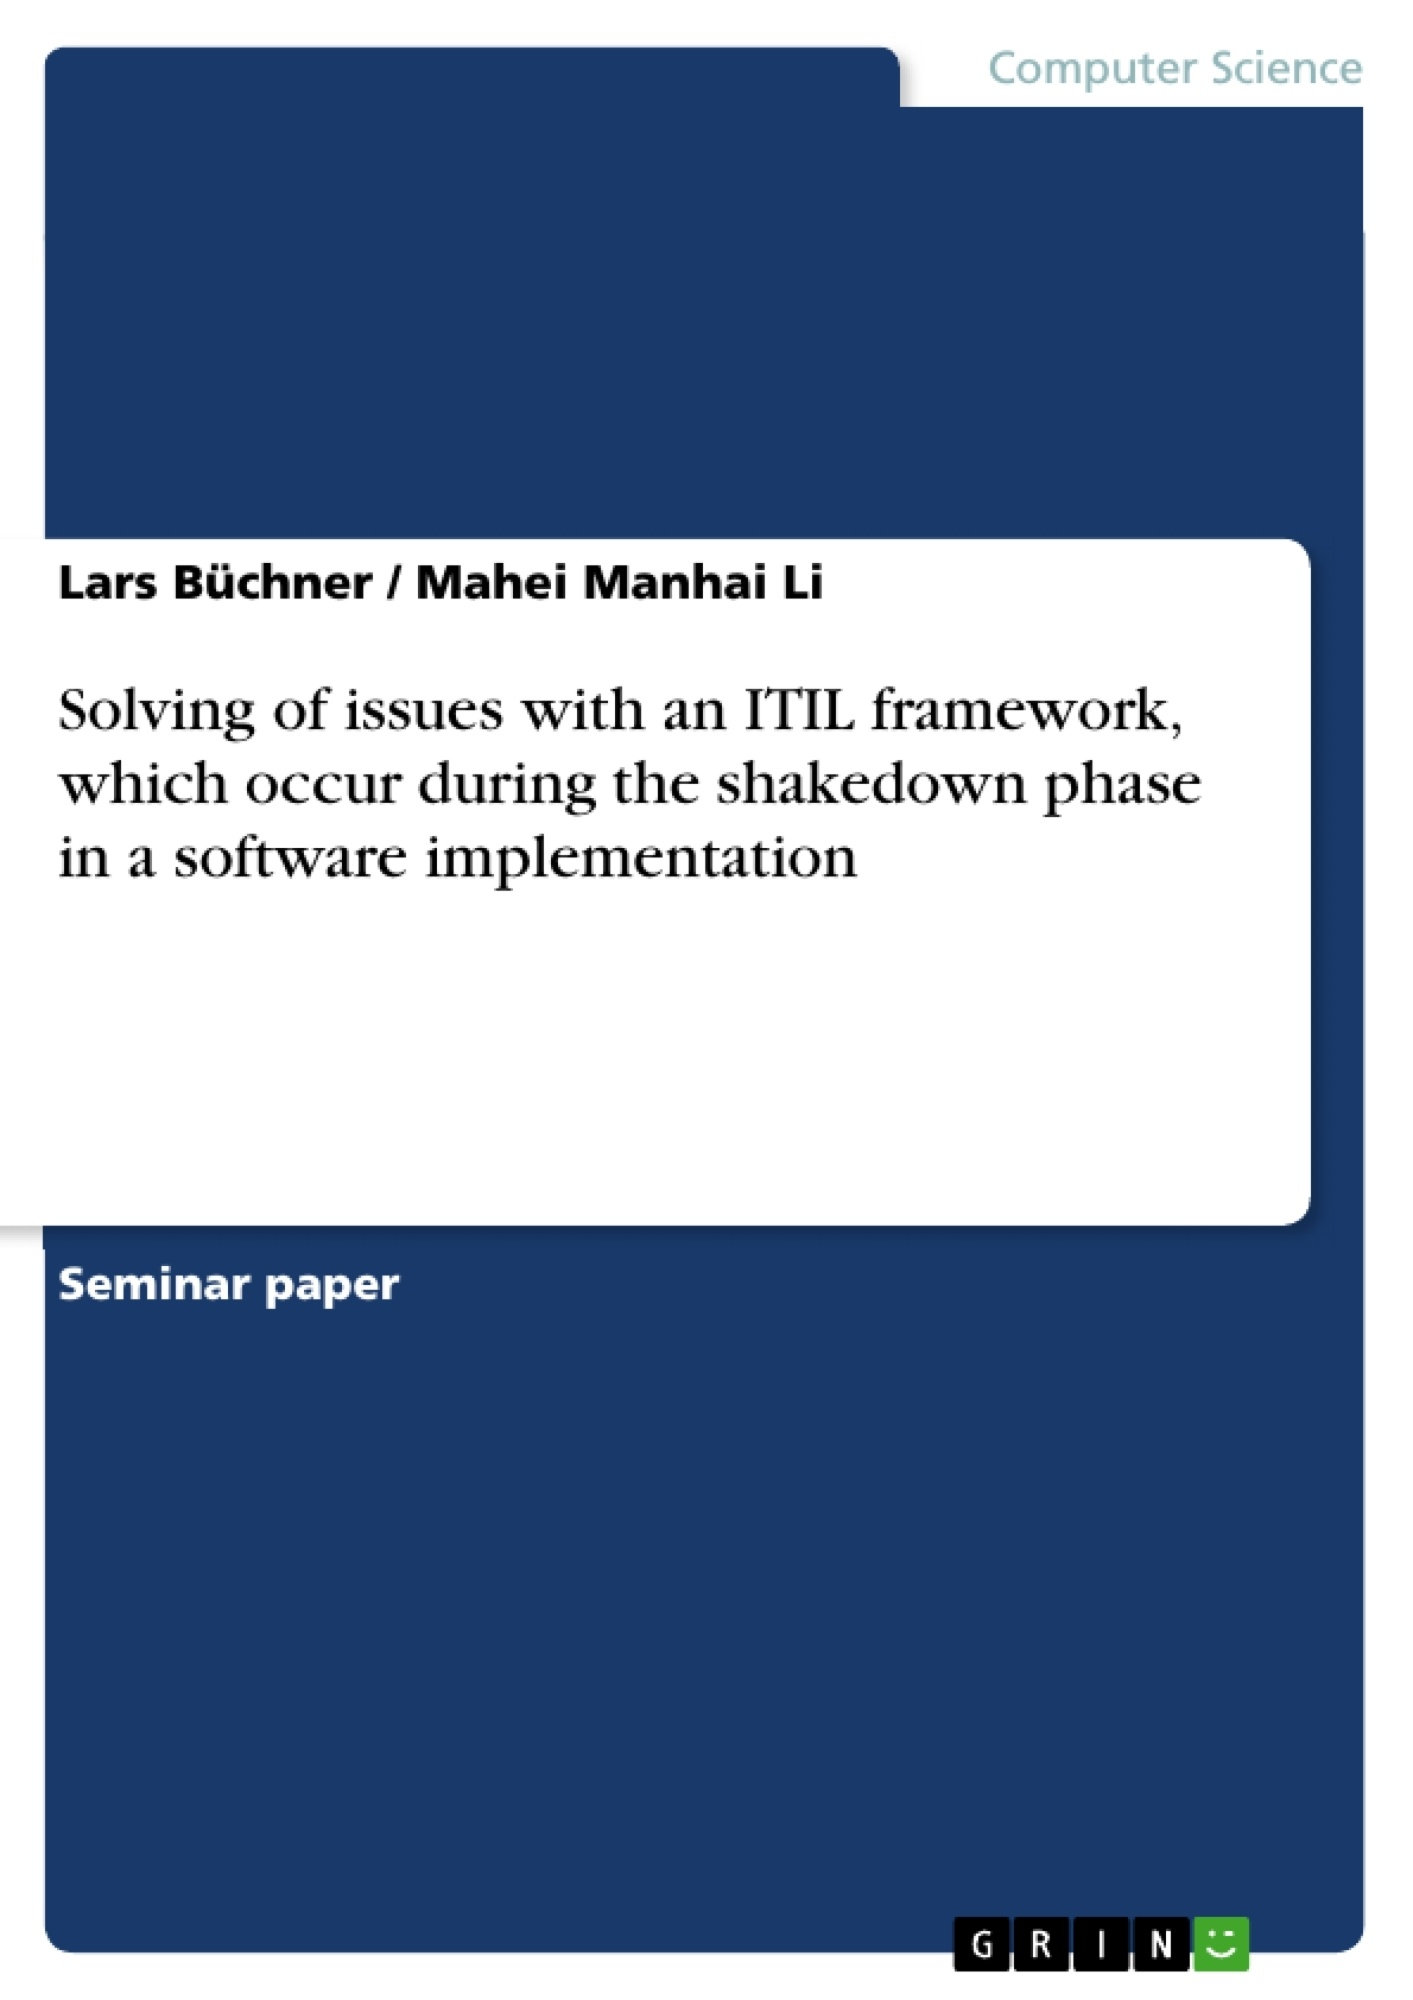 Title: Solving of issues with an ITIL framework, which occur during the shakedown phase in a software implementation